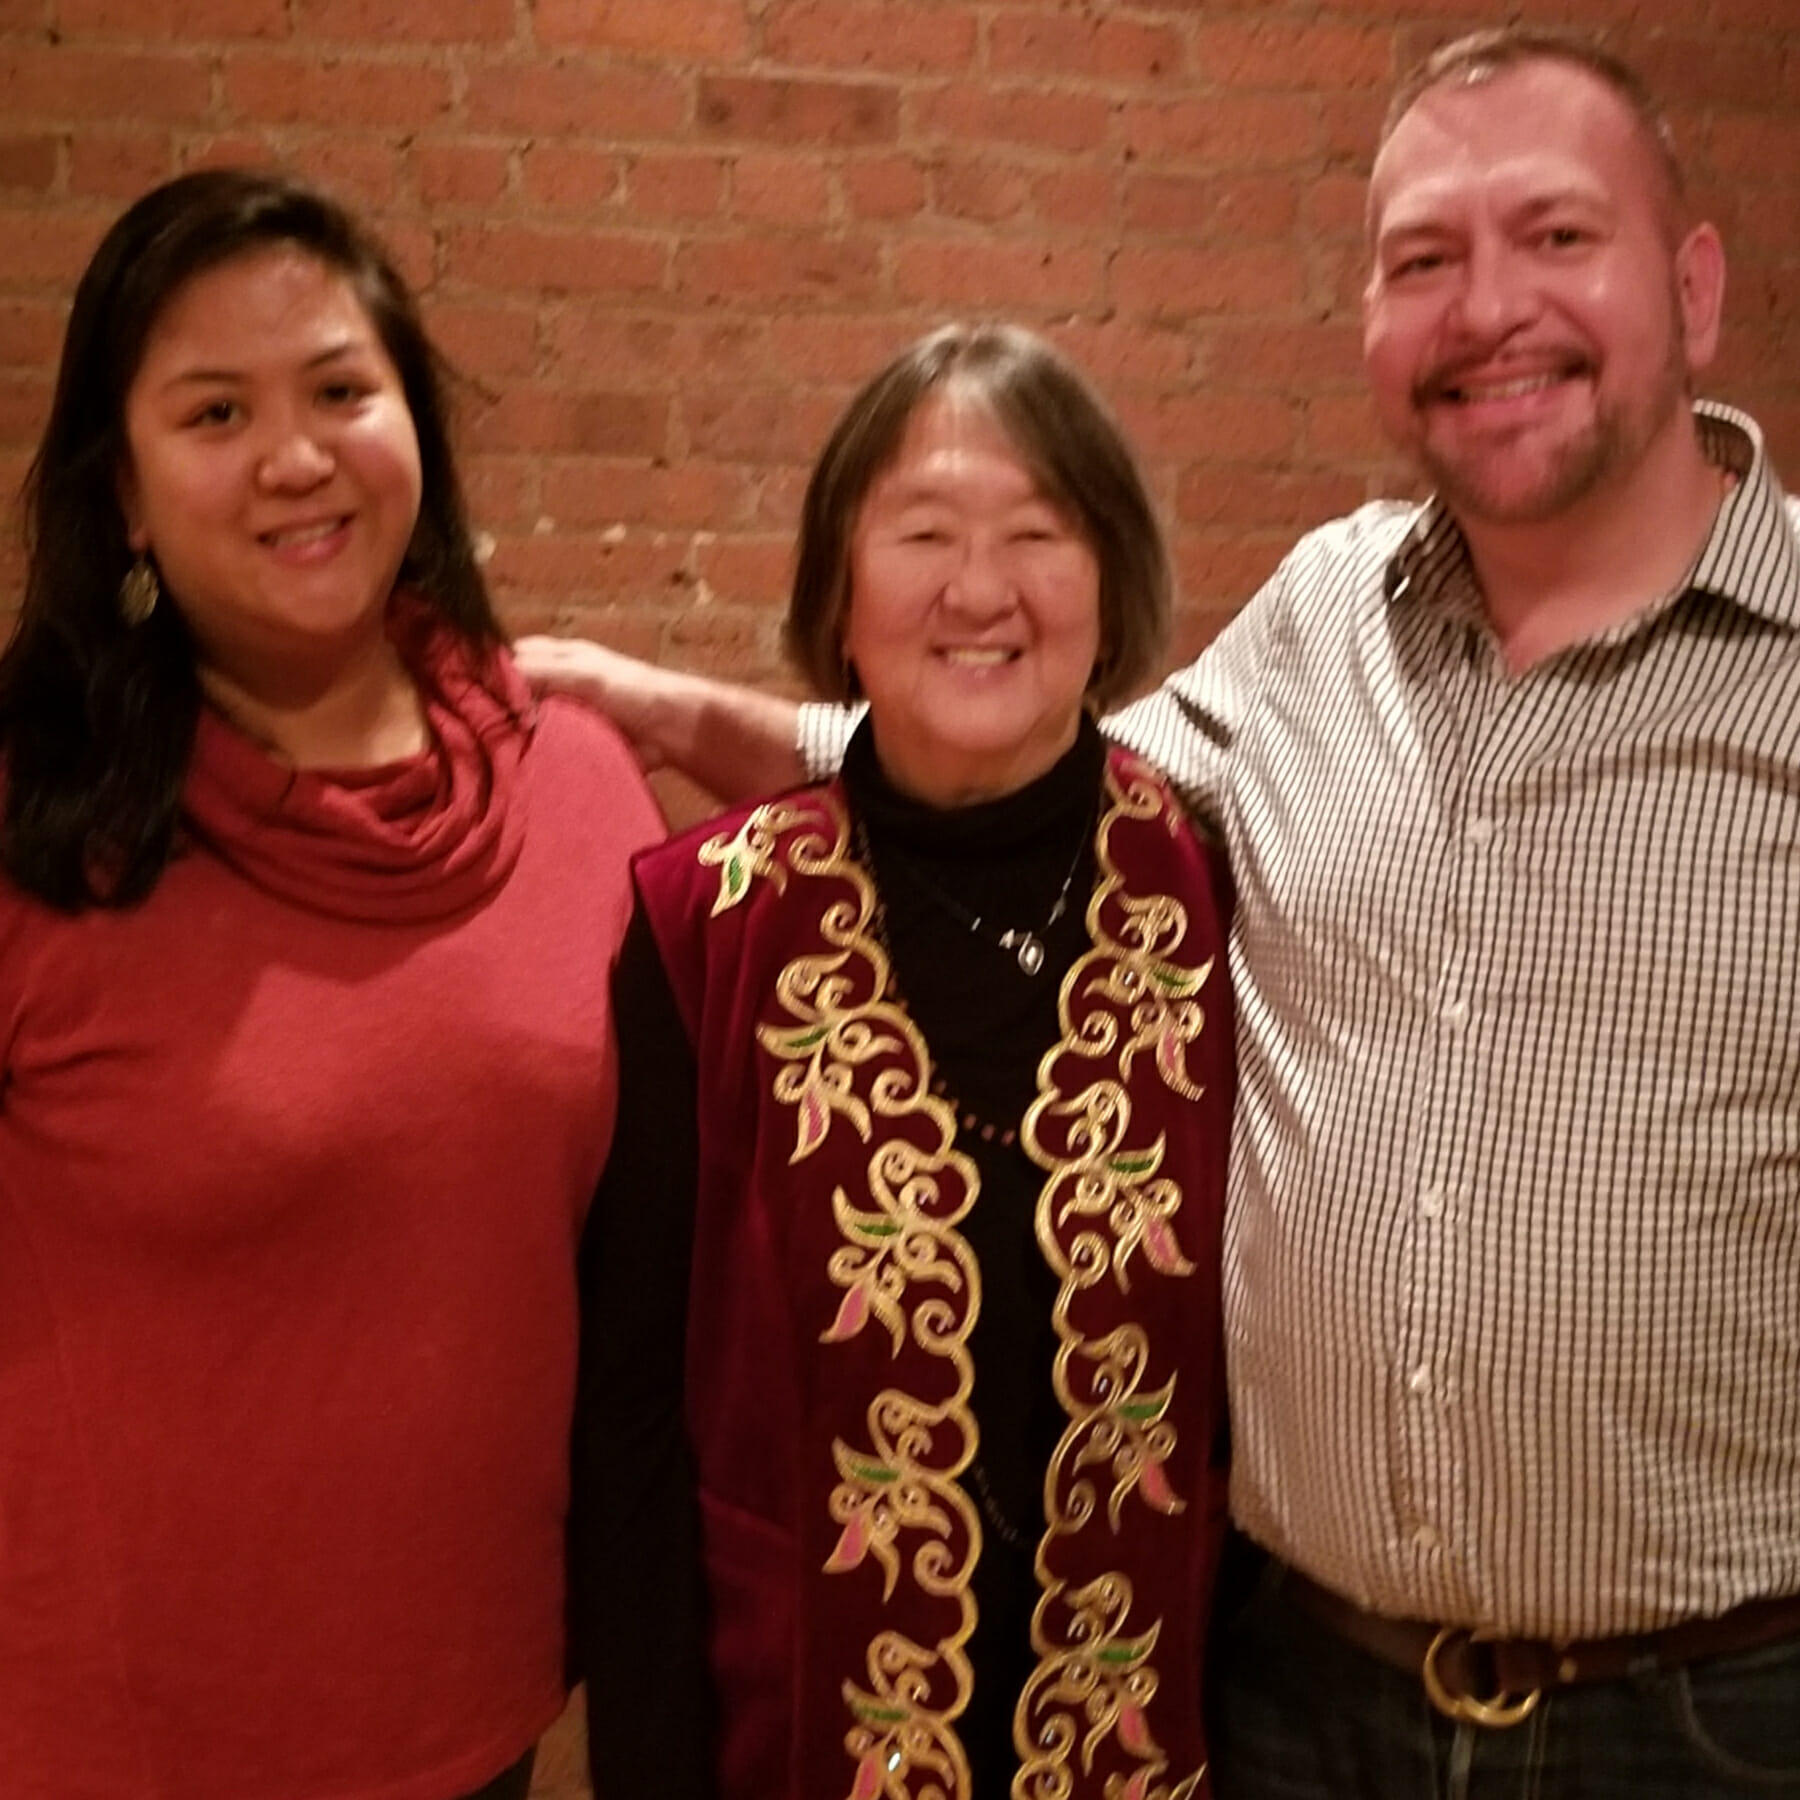 Home - NYC Reiki Center with Brian Brunius and Diane Domondon